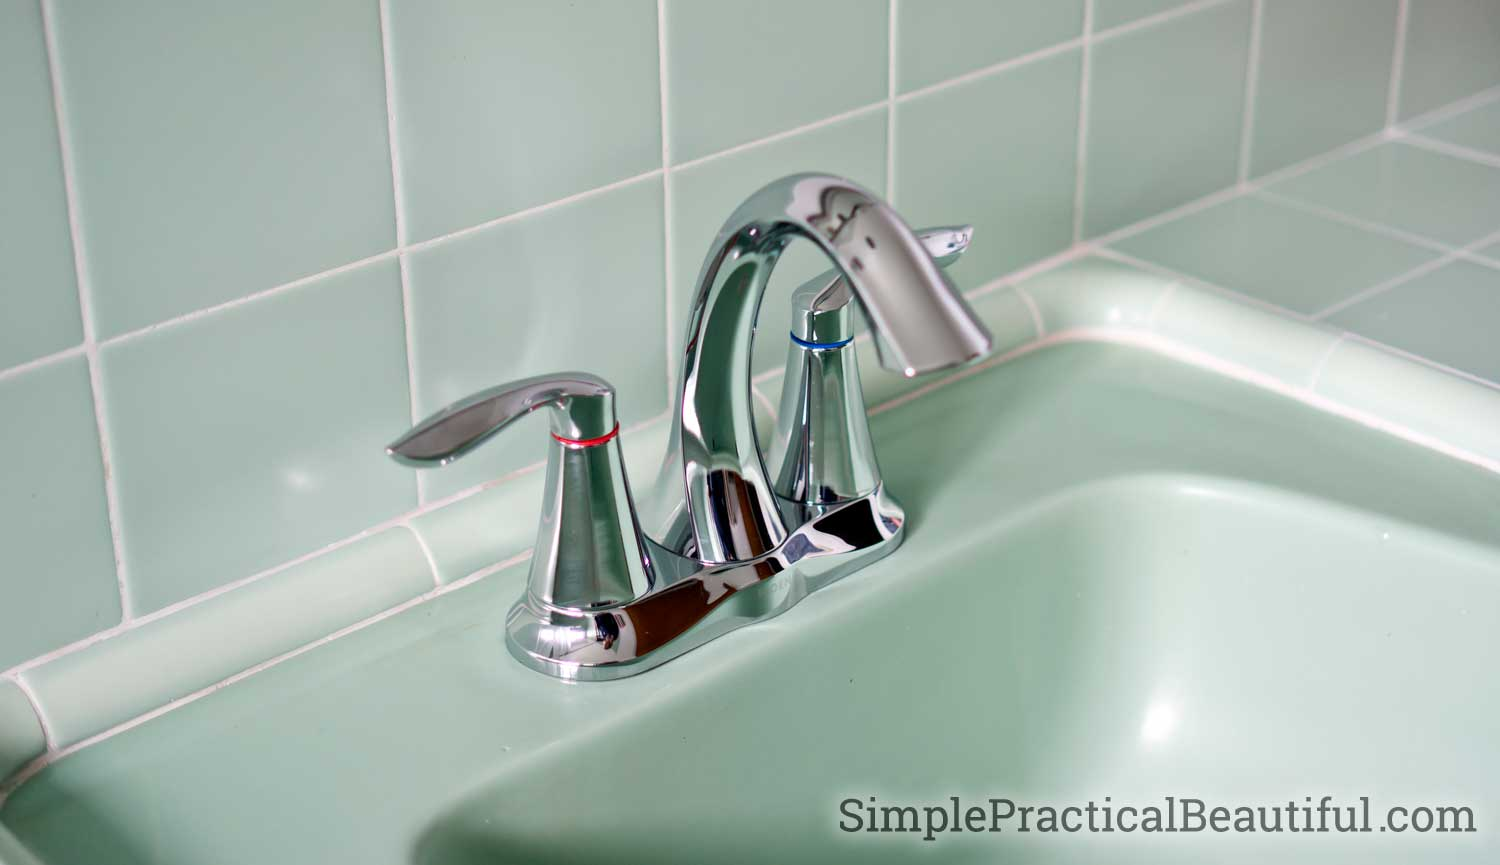 coiled kitchen faucet best buy aid how to install a bathroom - simple practical beautiful